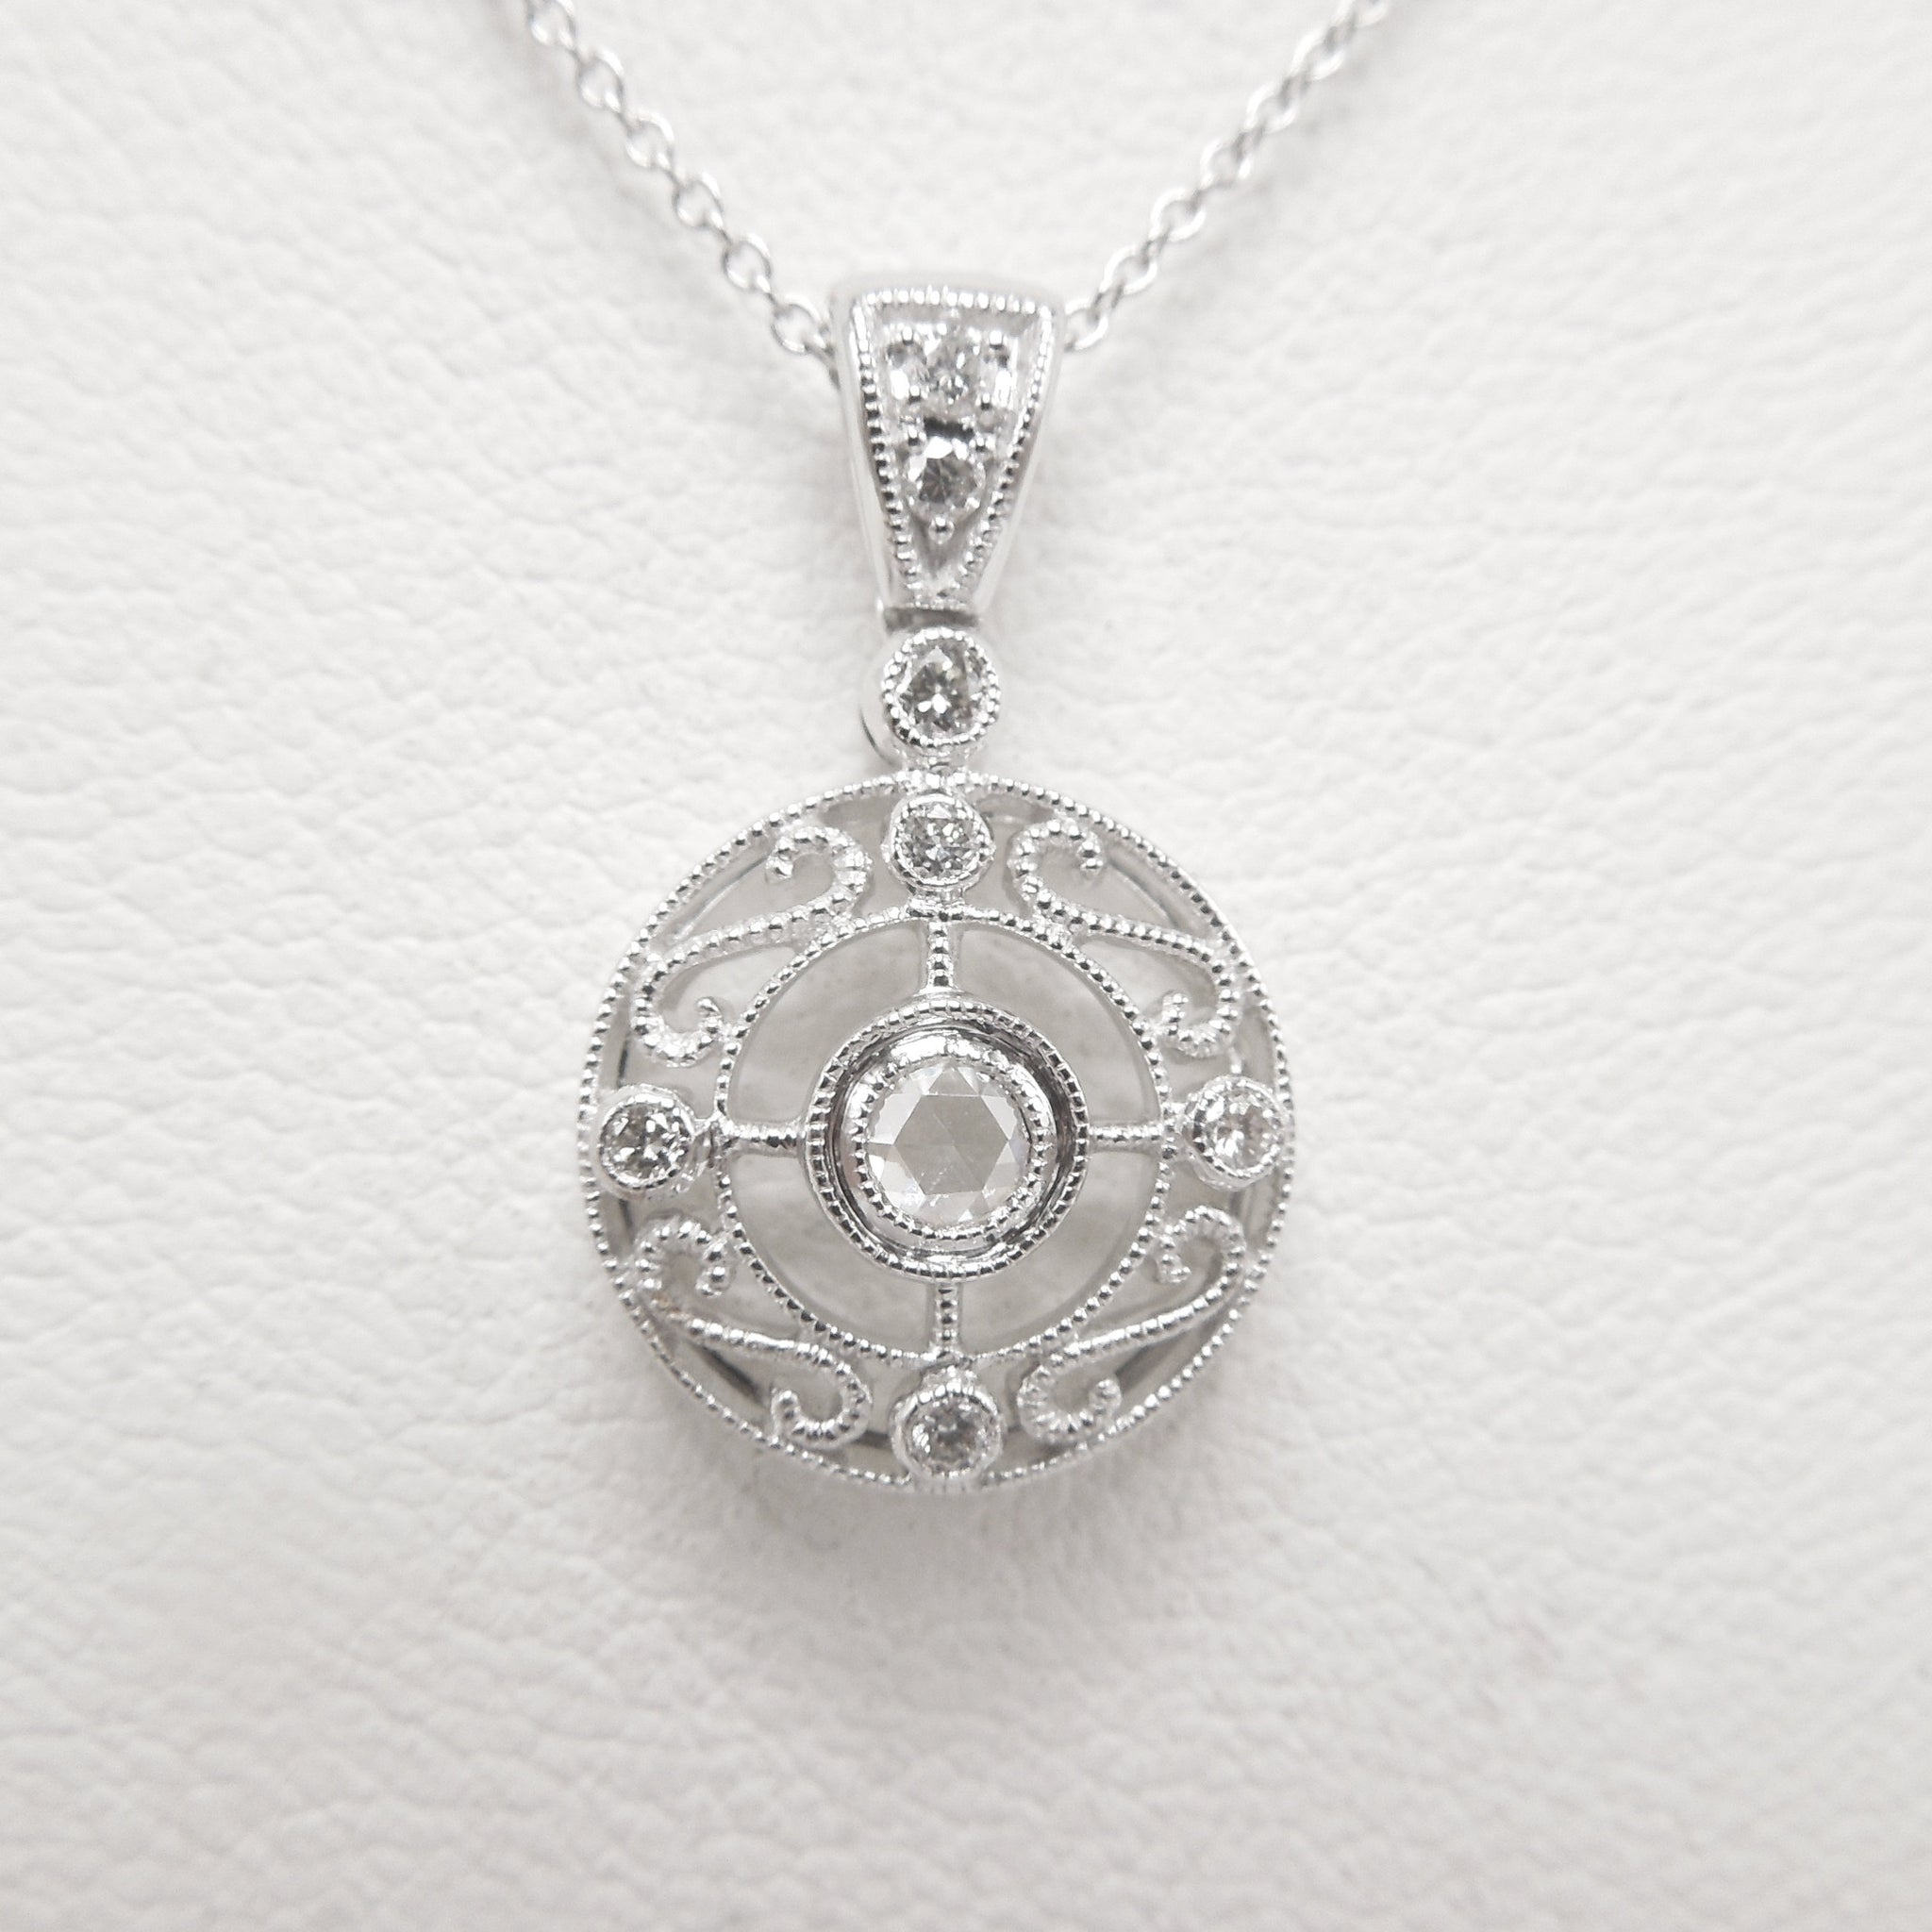 Art Deco Style Rose Cut Diamond Round Filigree Necklace and Pendant